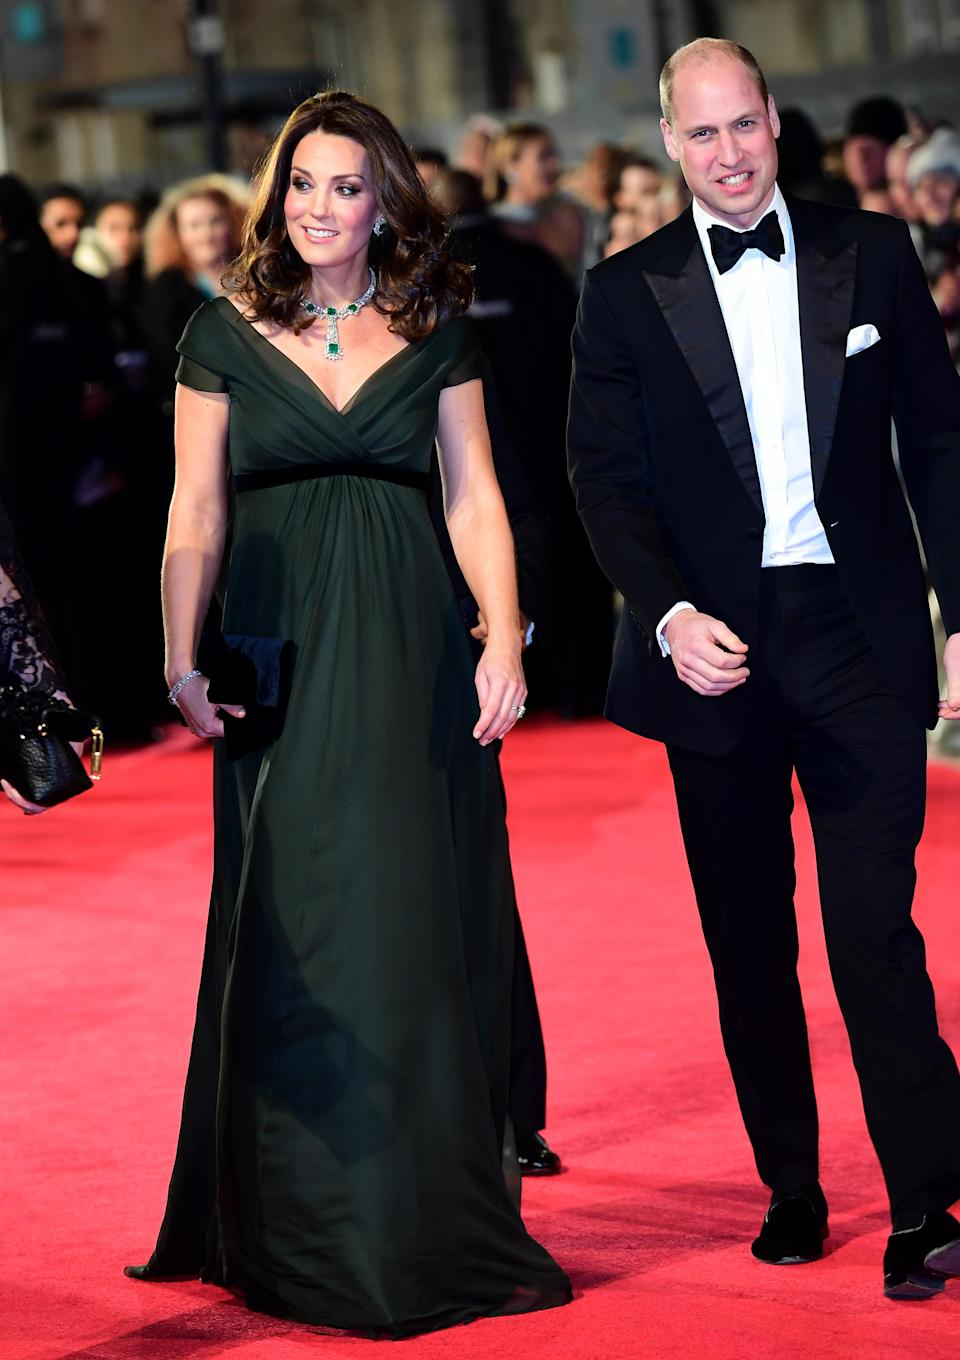 <p>On February 18, the Duchess of Cambridge wore a deep green dress by Jenny Packham for the BAFTA 2018 ceremony. Many believe that her black belt was a subtle nod to the Time's Up movement which saw A-listers don black on the red carpet. <em>[Photo: Getty] </em> </p>